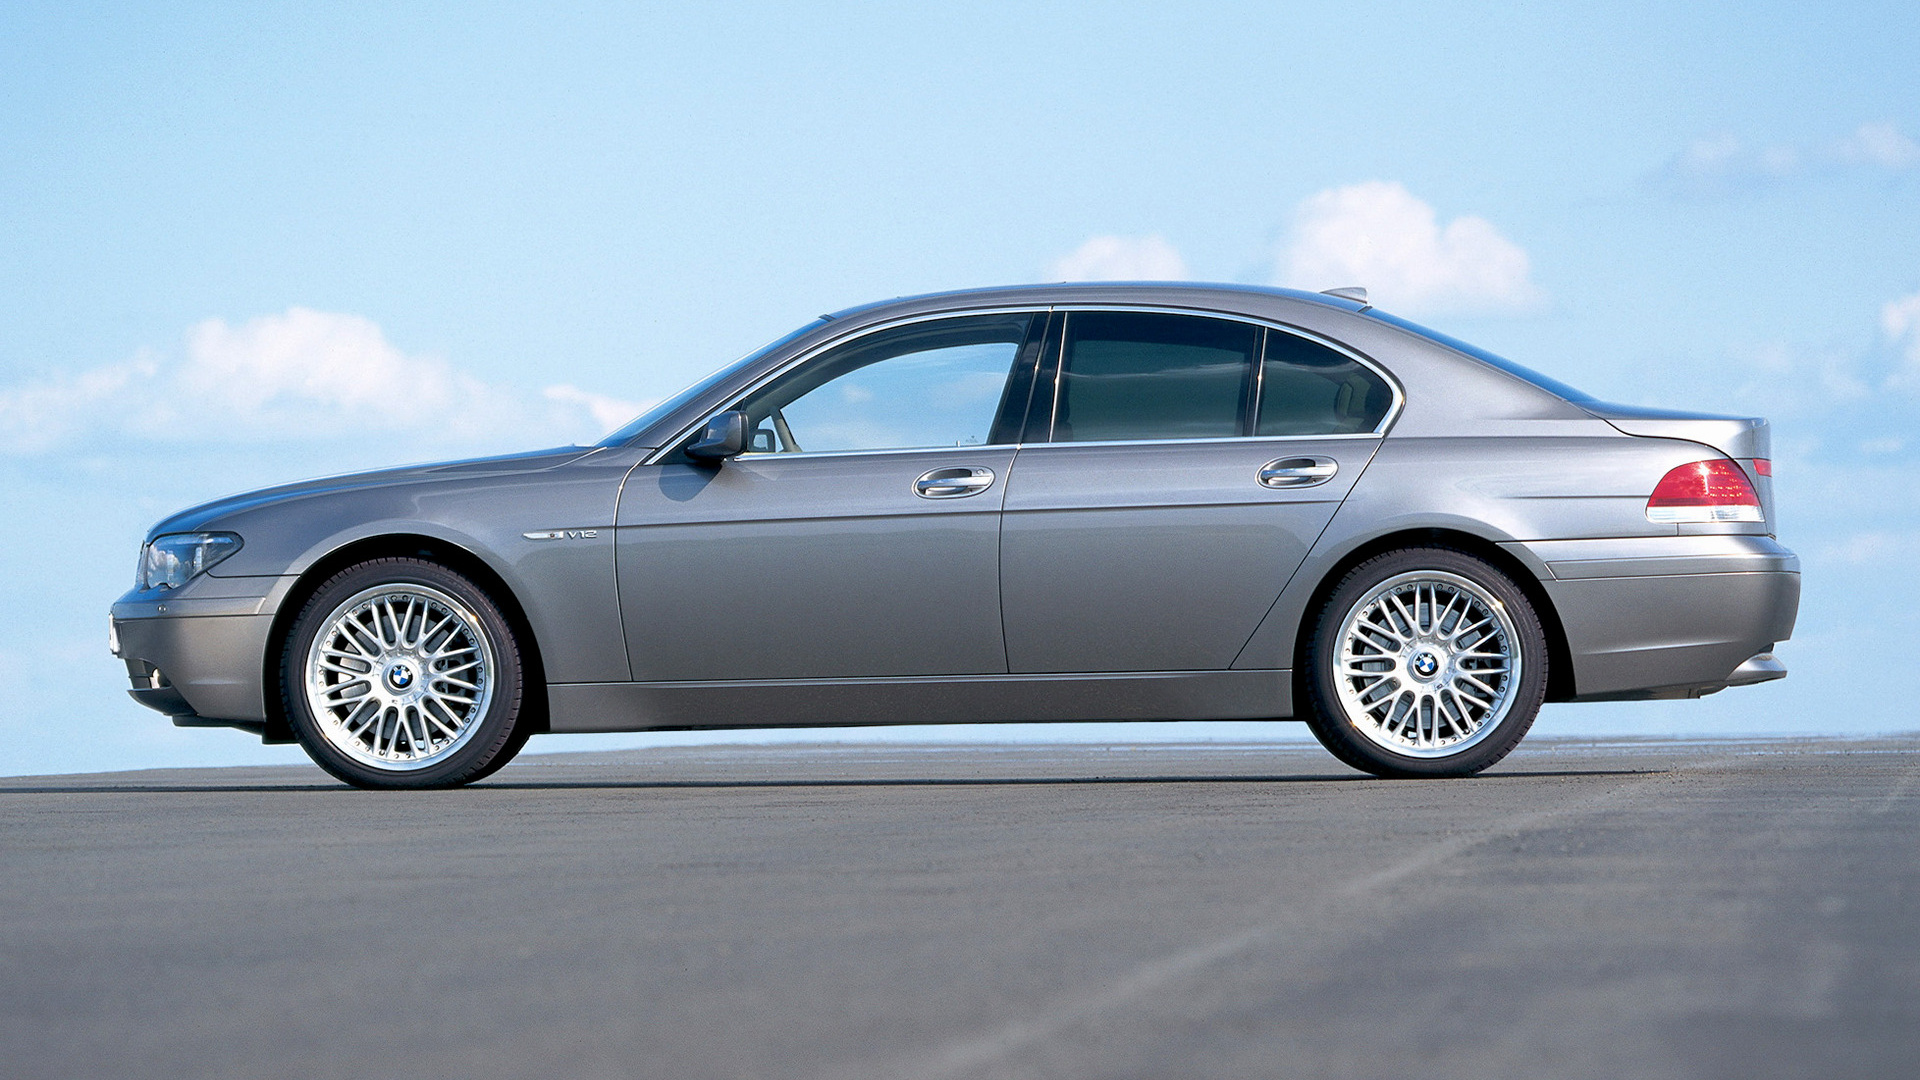 2003 BMW 760i Full HD Wallpaper And Background Image